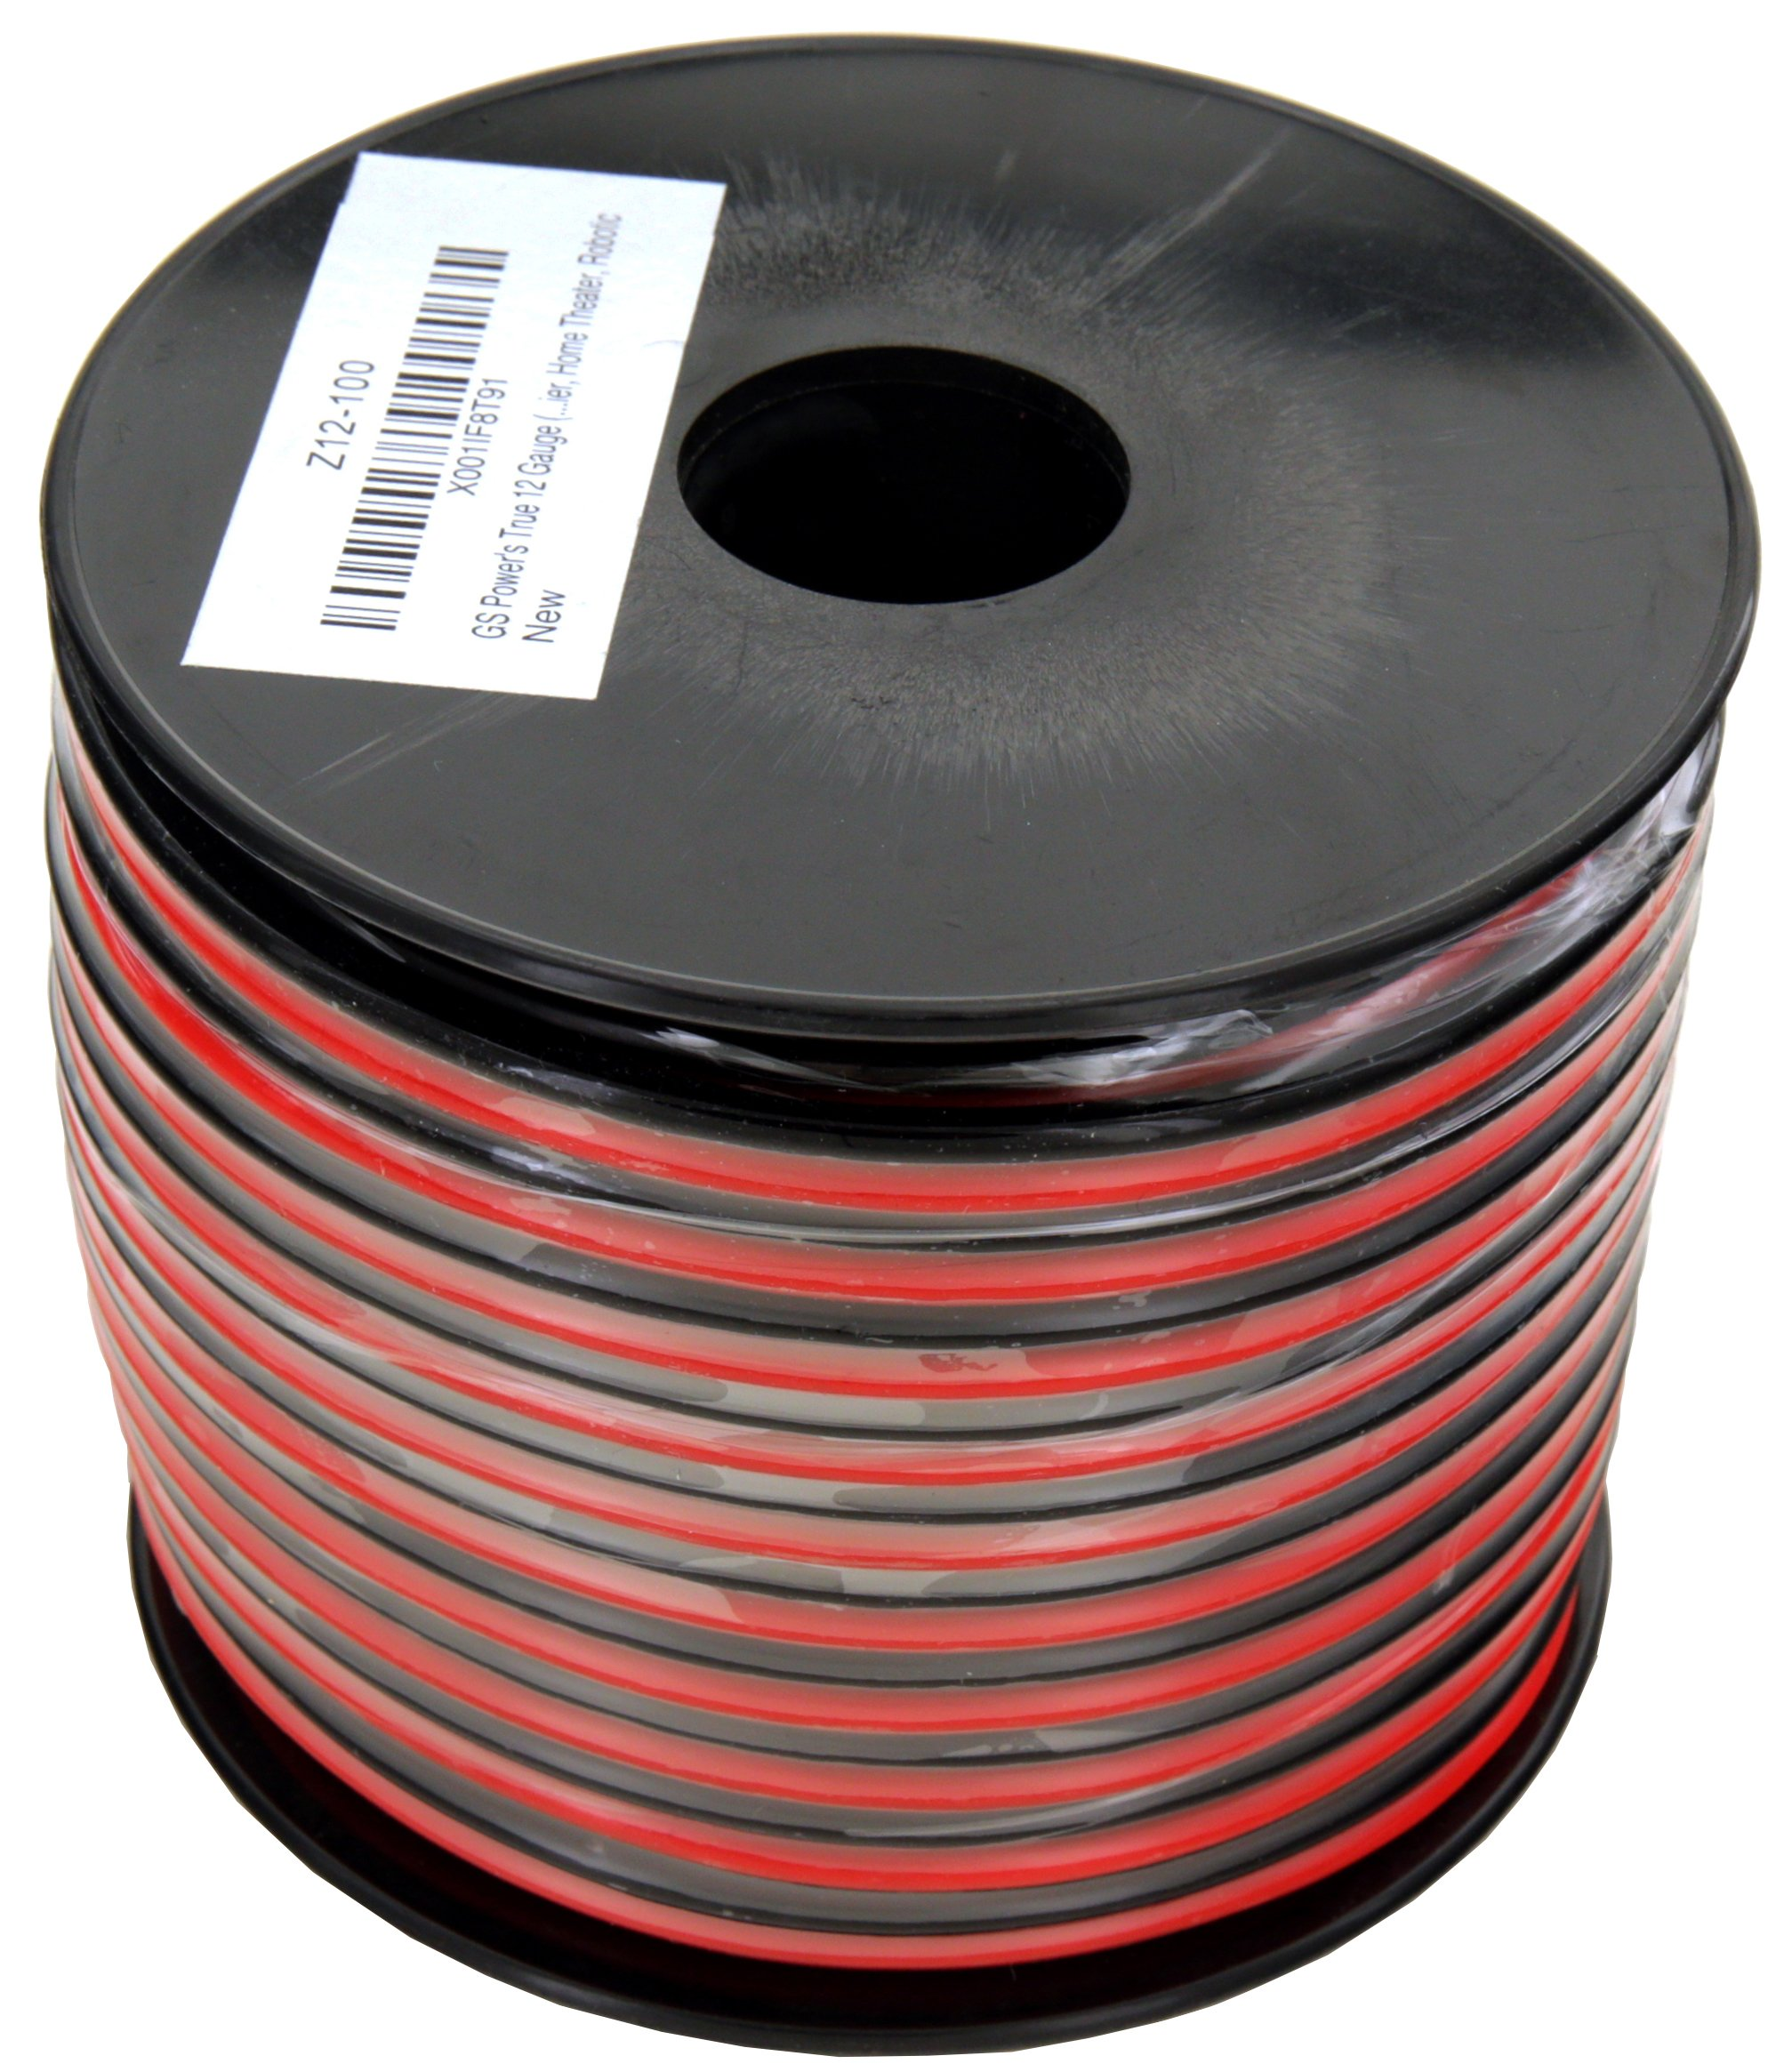 GS Power 12 AWG (American Wire Gauge) 100 Feet Flexible Stranded Oxygen Free Copper Red/Black 2 Conductor Bonded Zip Cord for Car Audio Amplifier 12V Automotive Dash Harness LED Light Wiring by GS Power